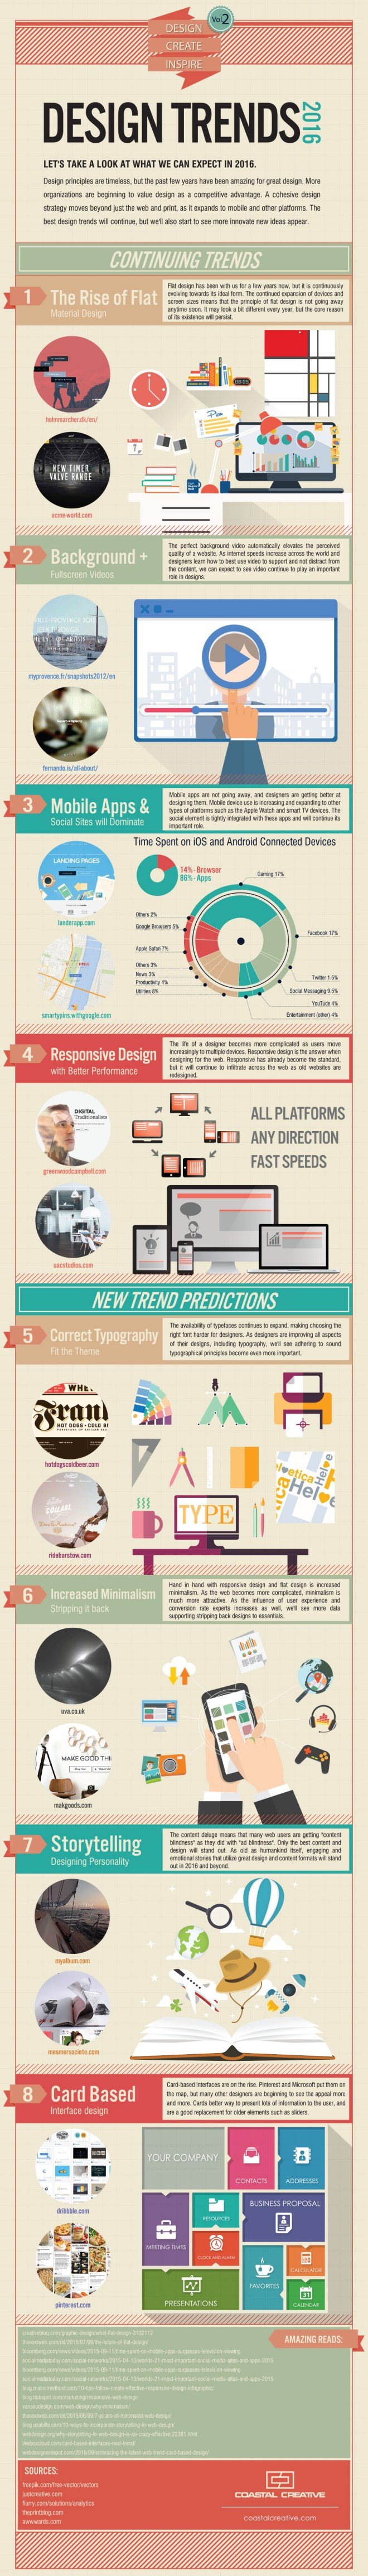 design-trends-2016-infographic